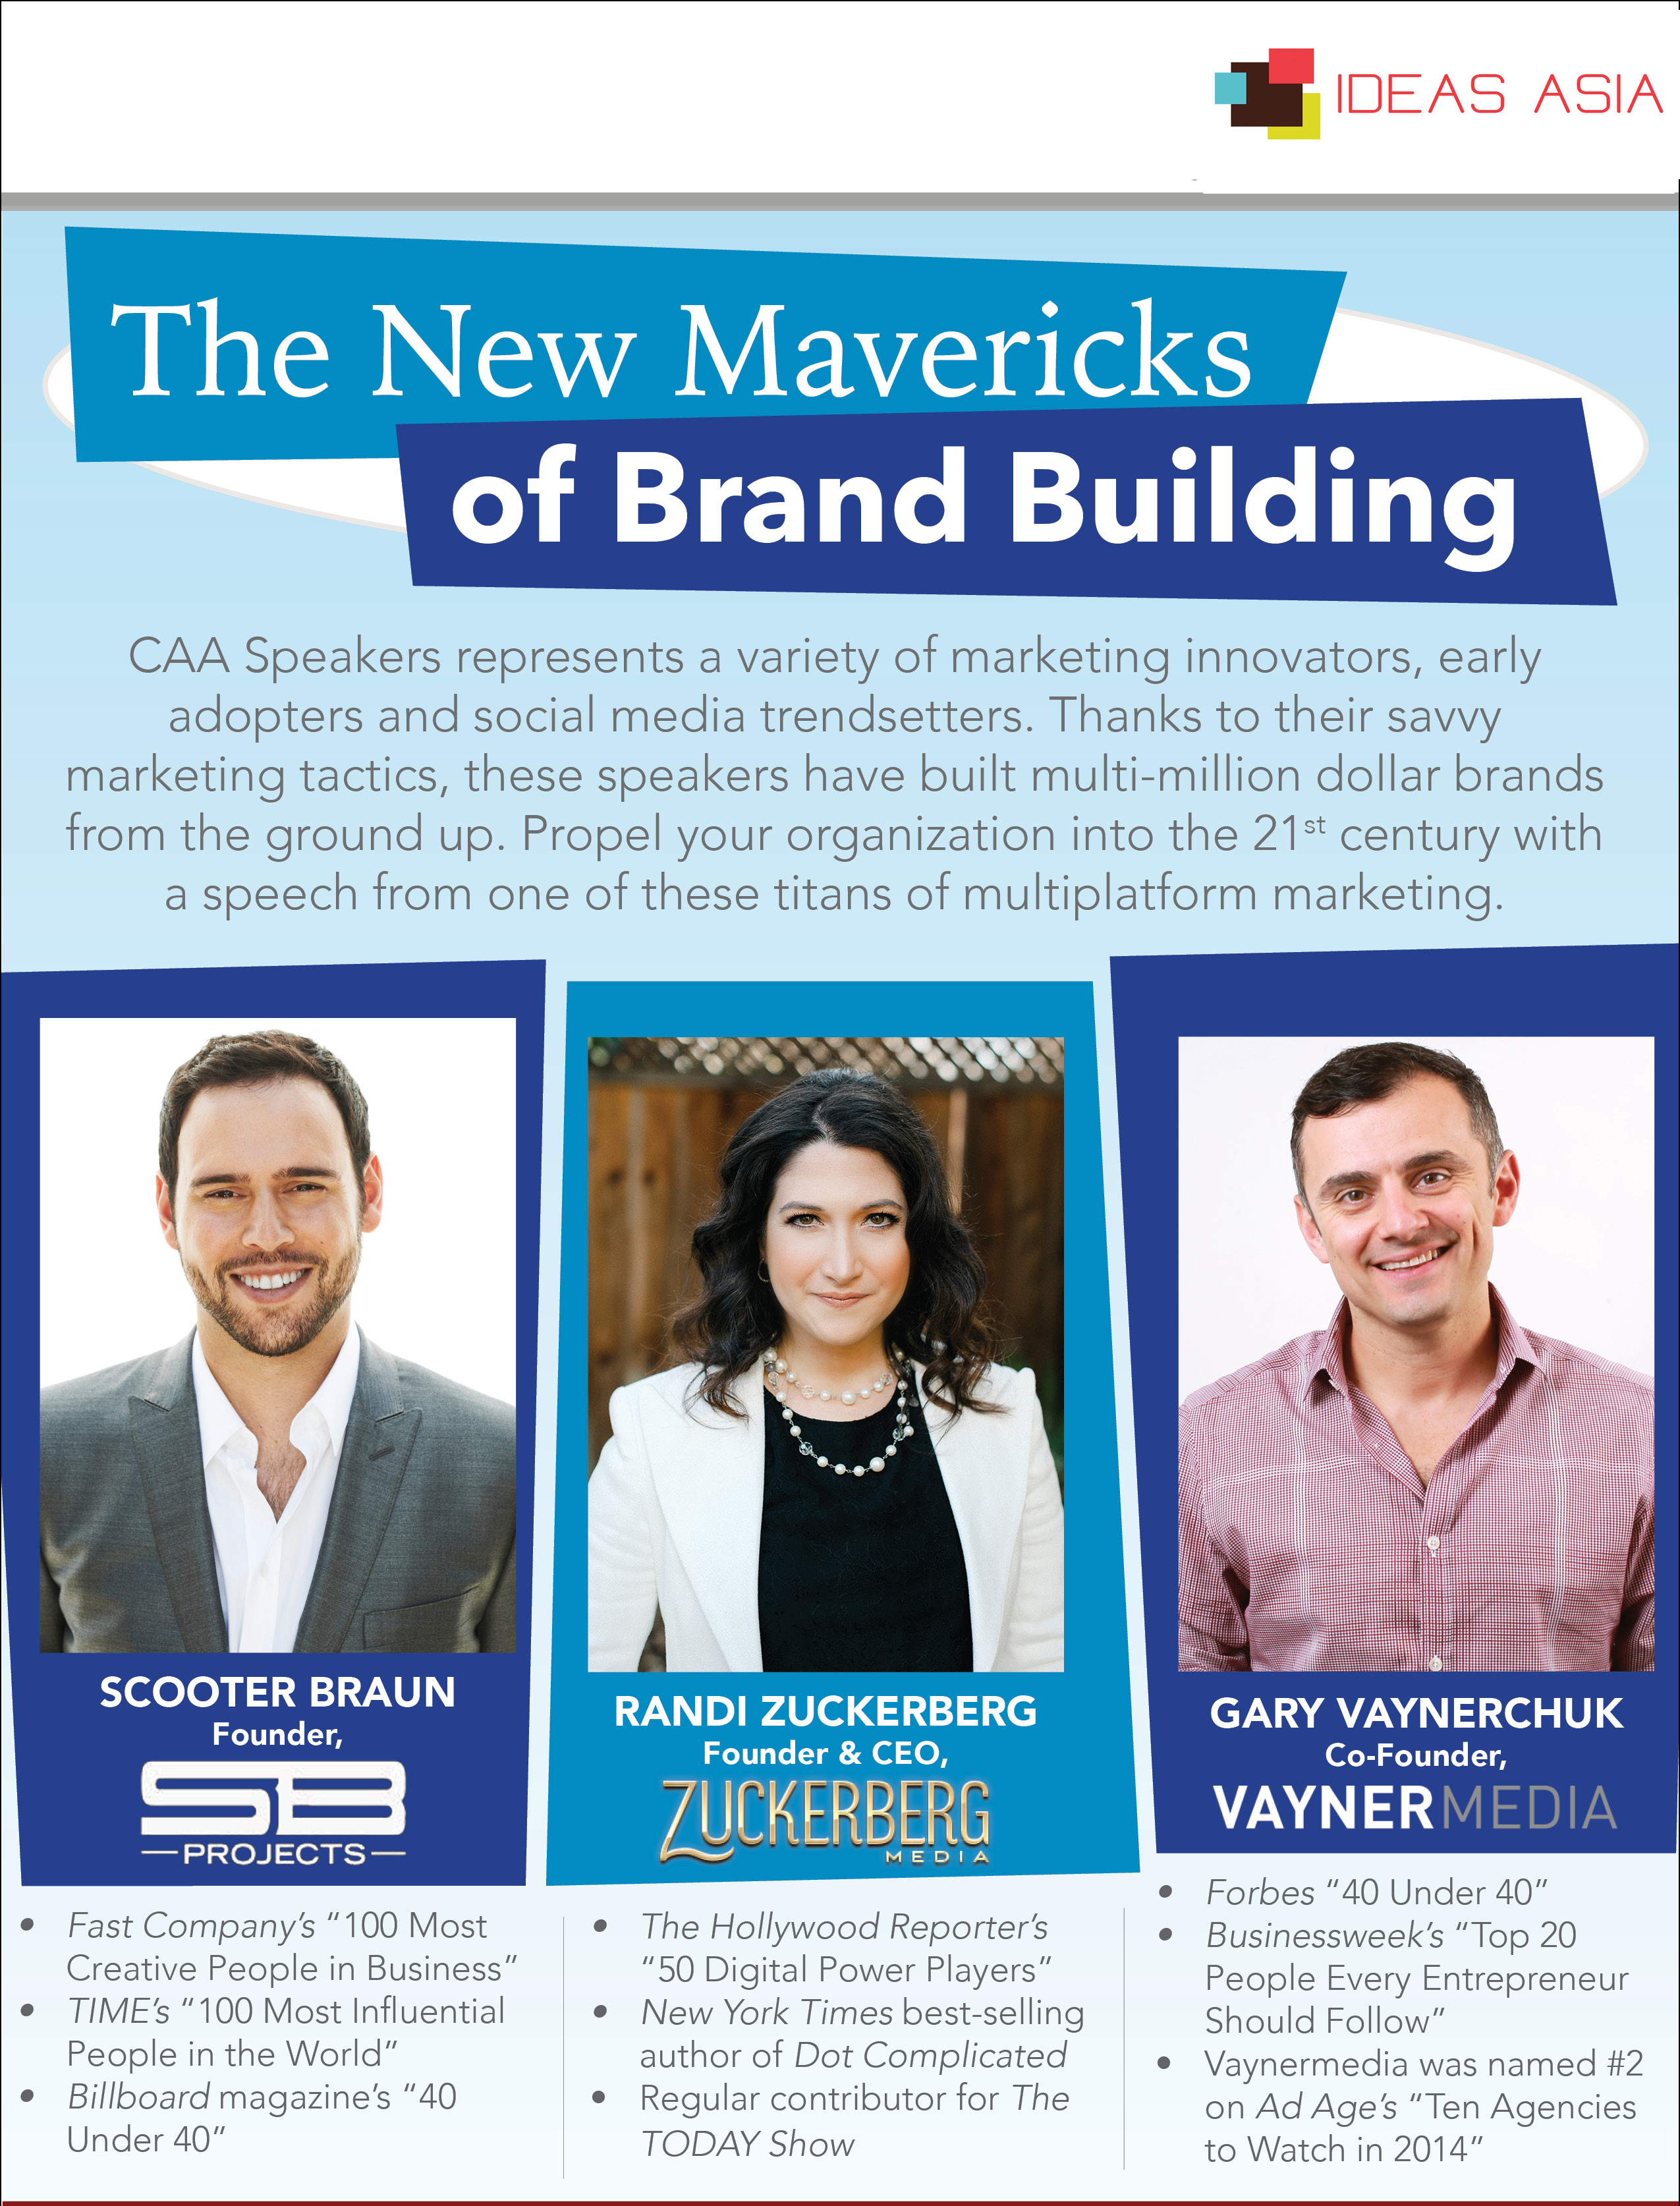 IDEAS ASIA - New Mavericks of Brand Building.jpg